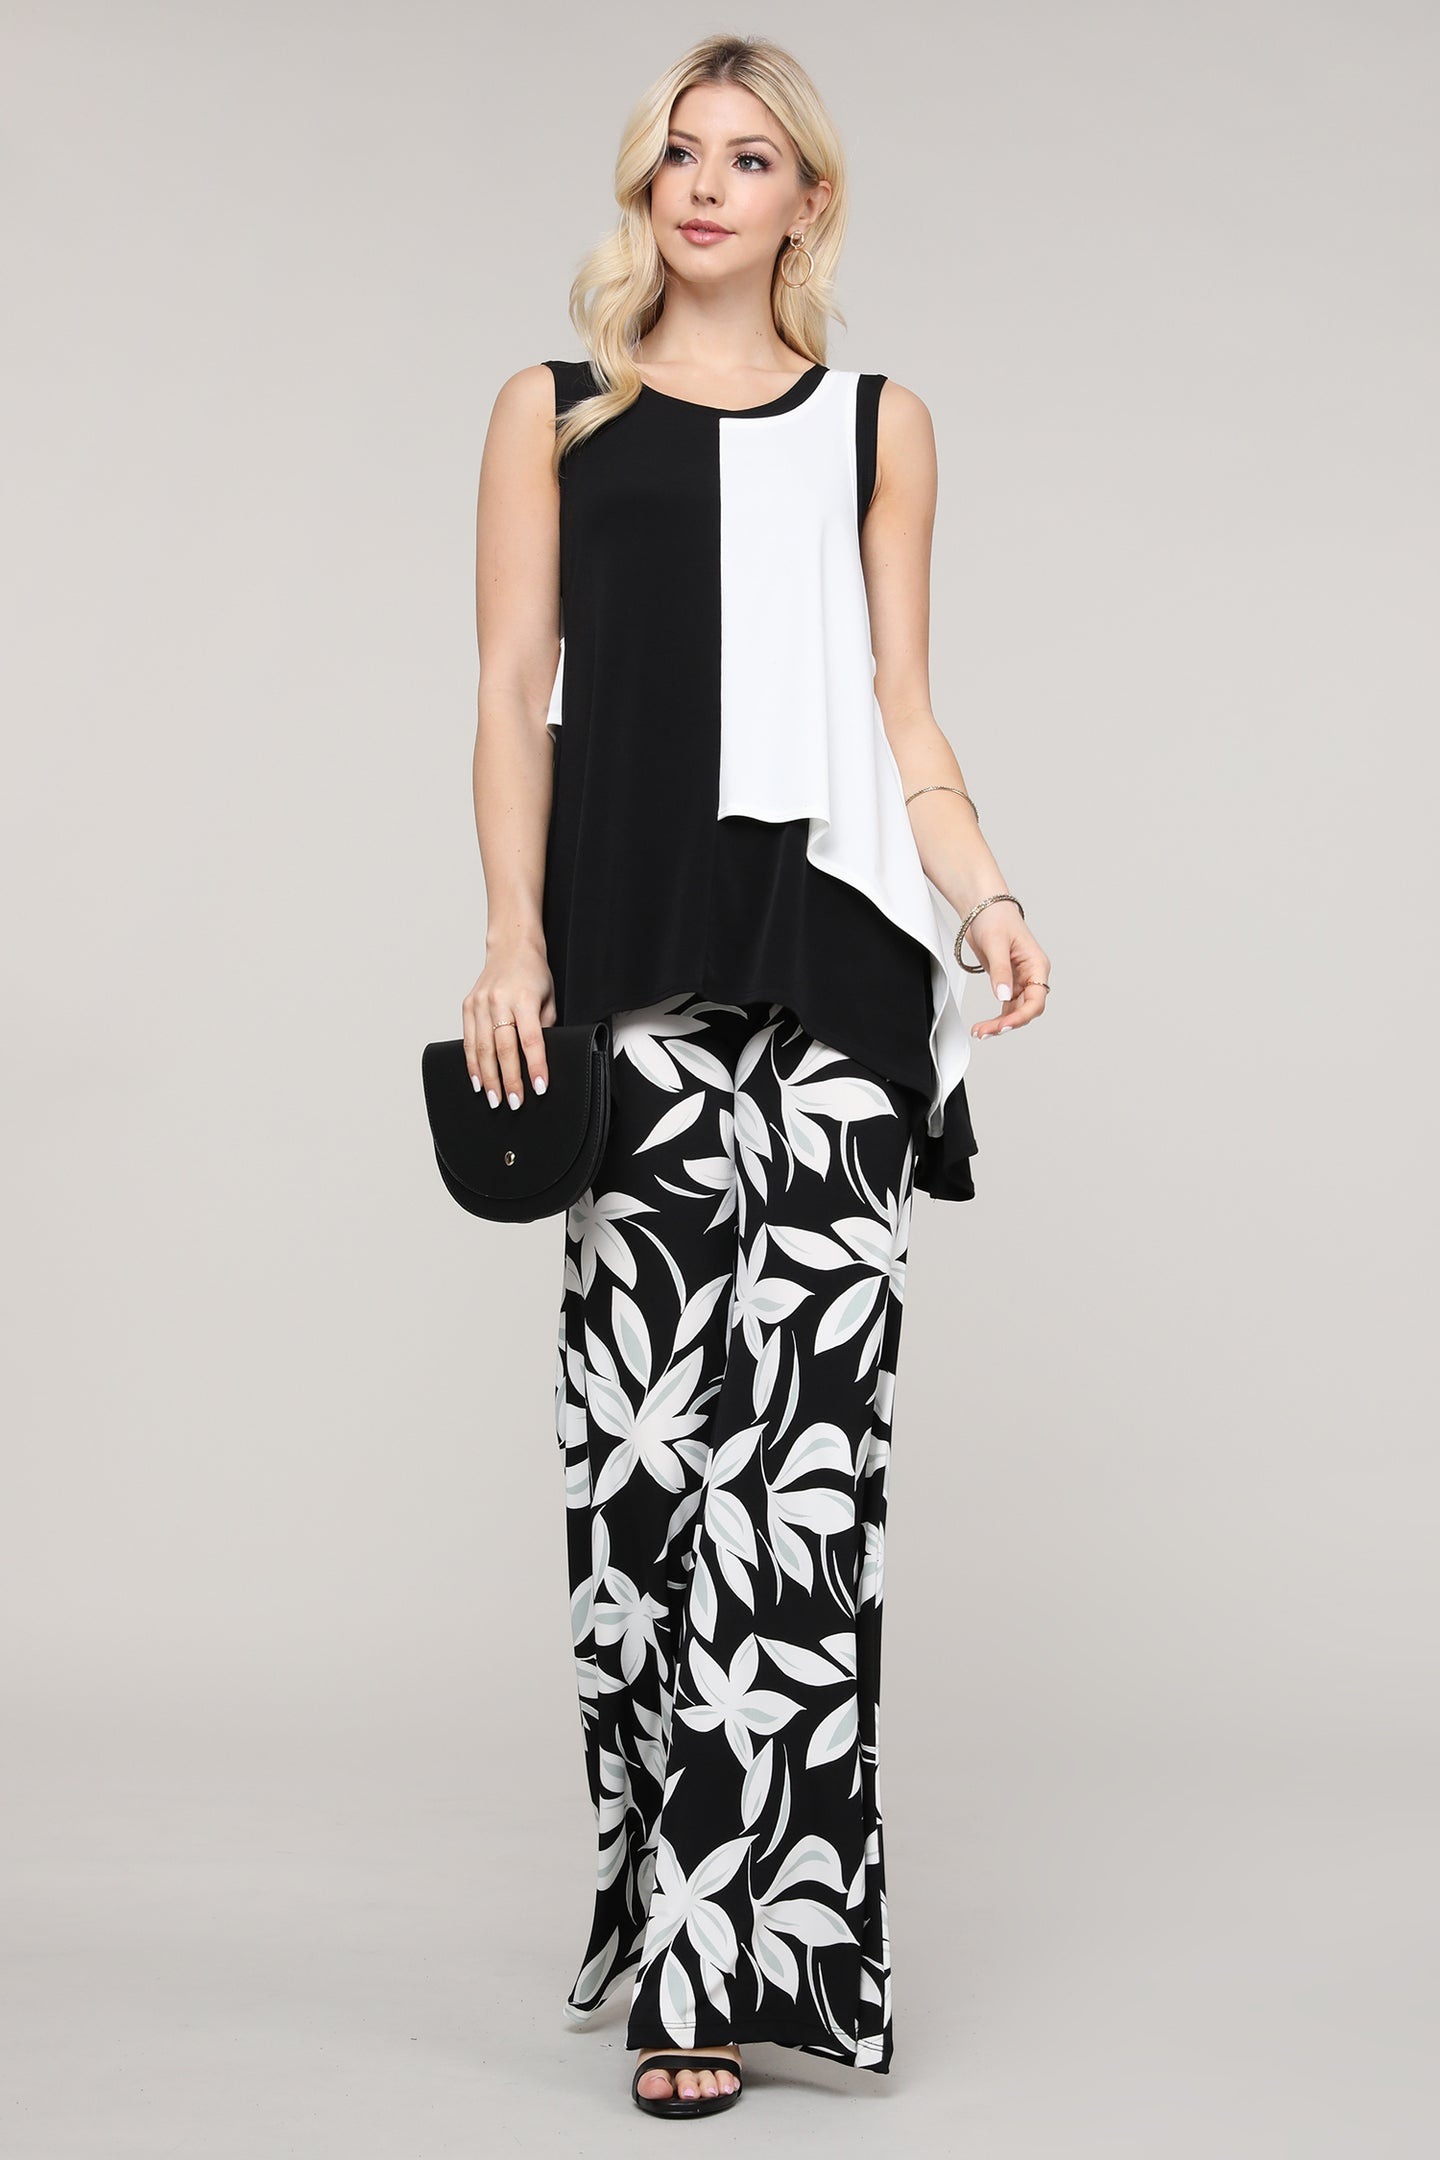 Black Mint and Ivory Floral Wide Leg Palazzo Pants